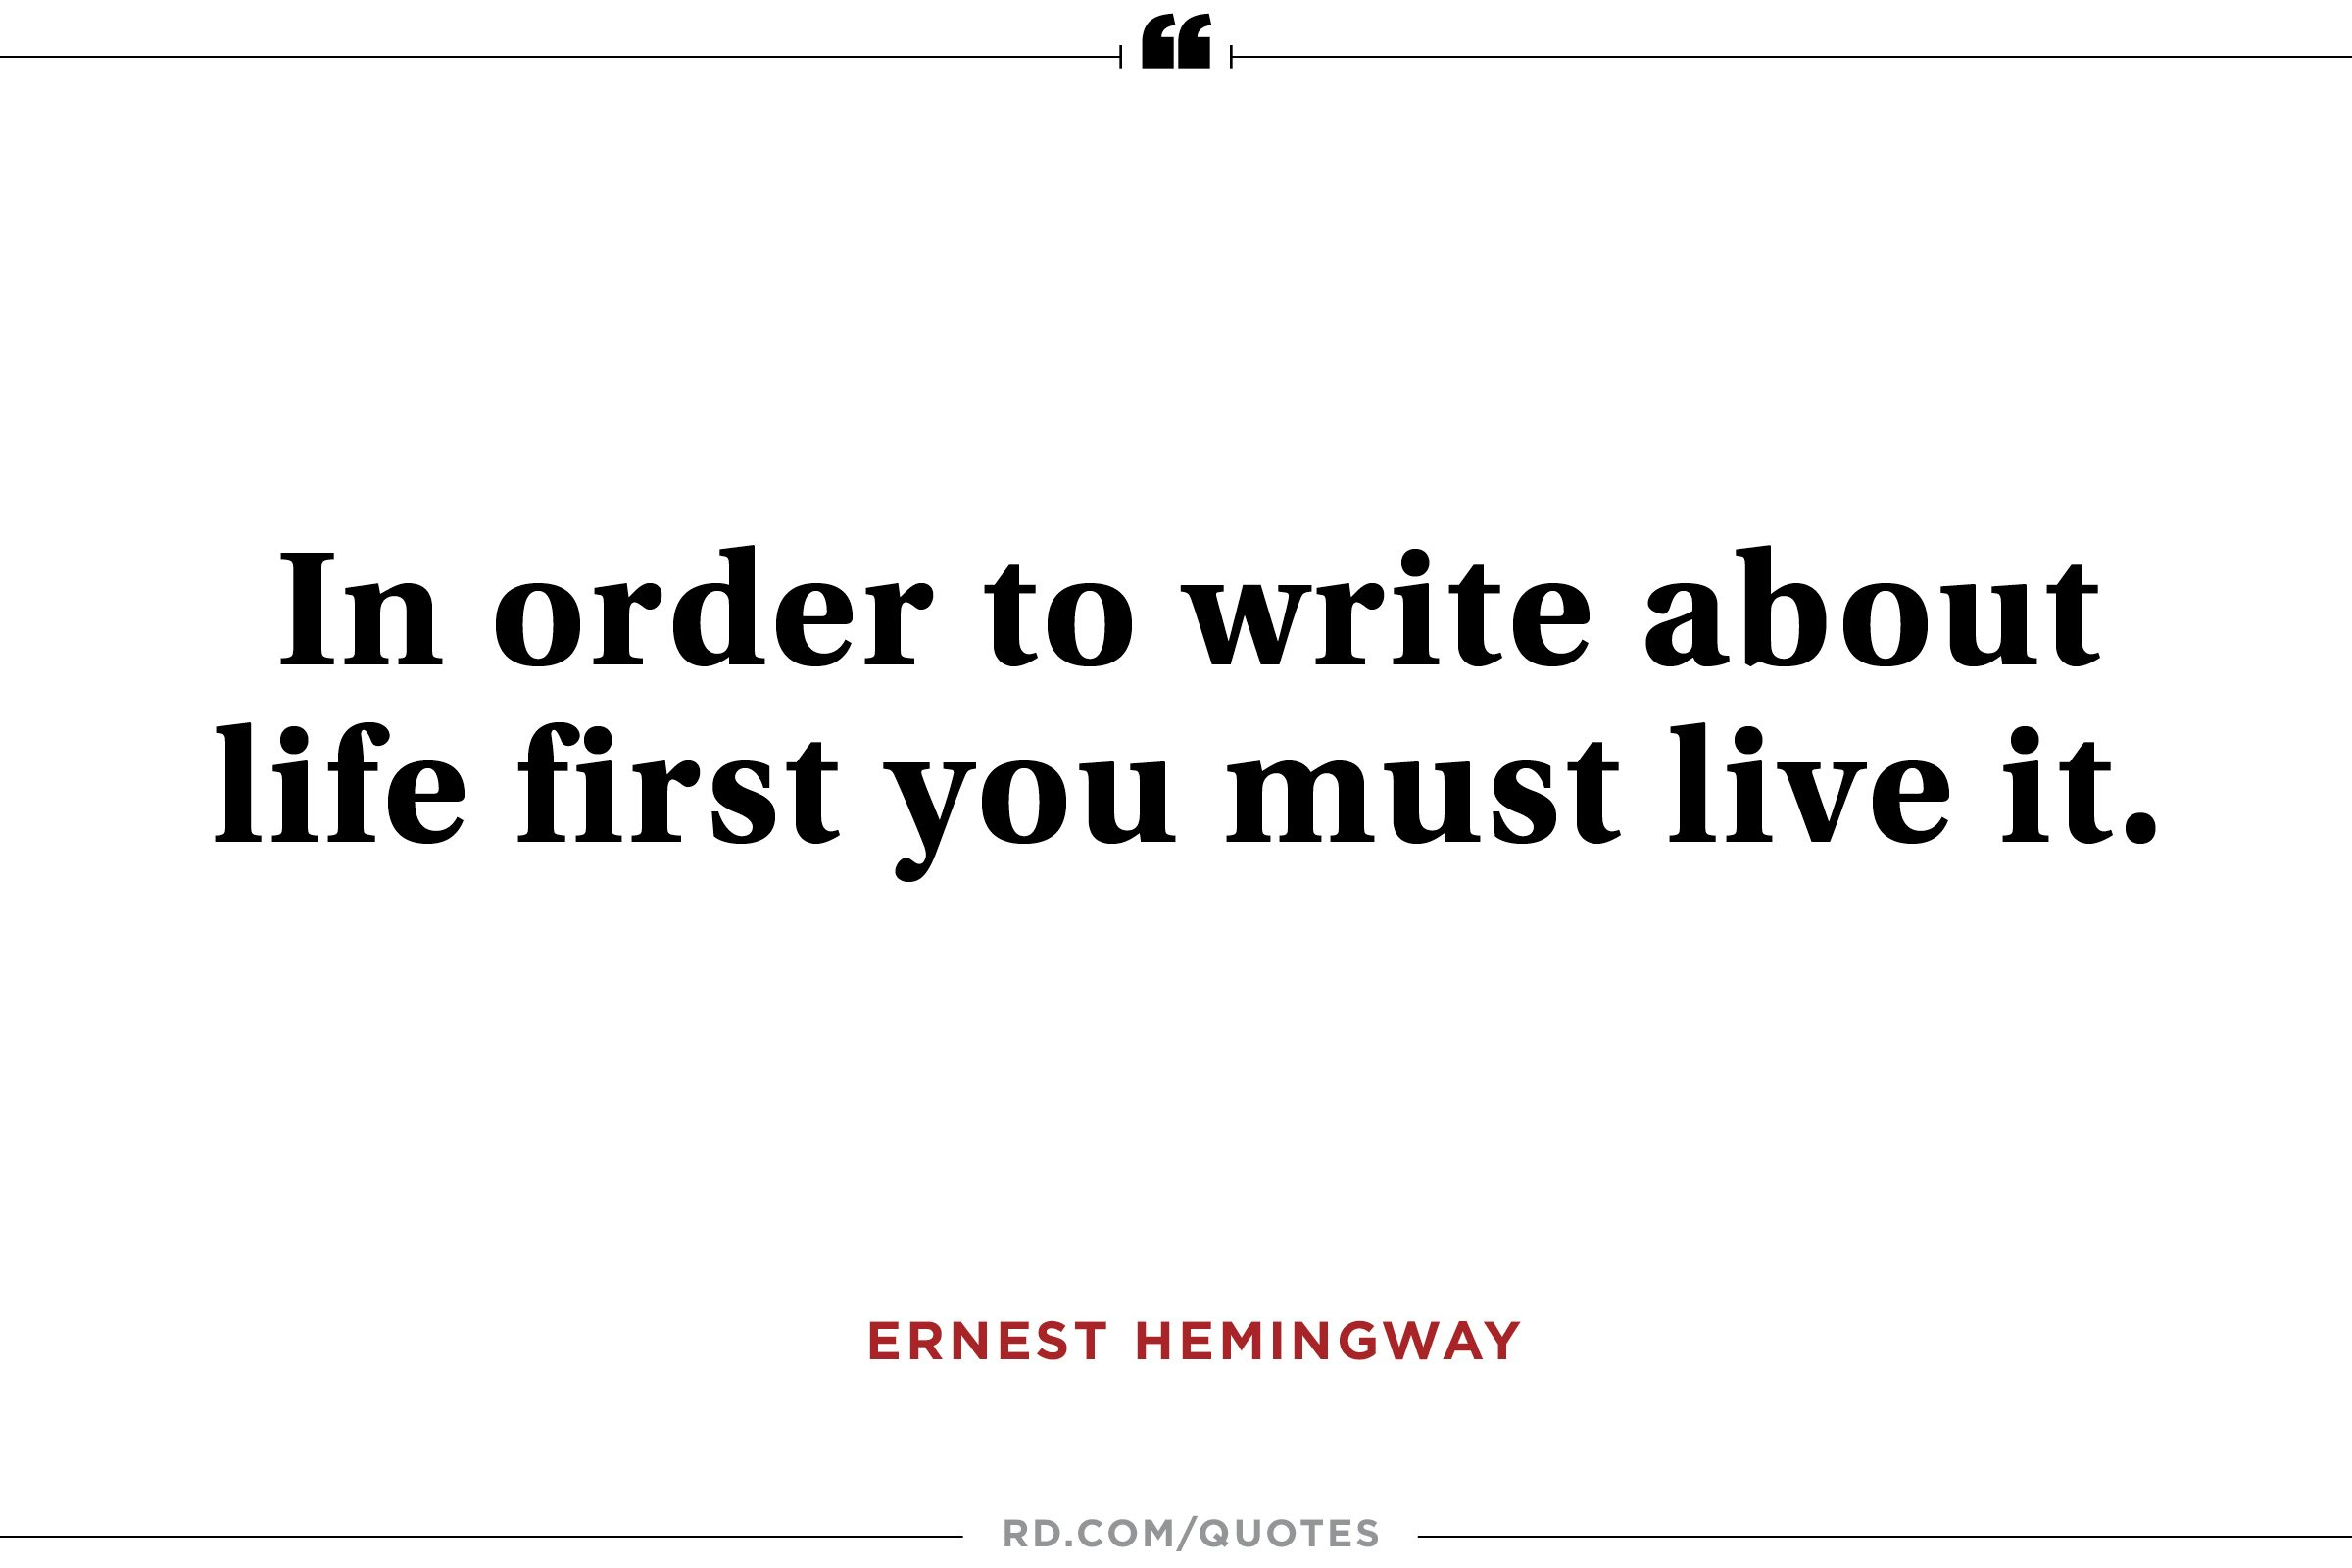 Housekeeping Quotes 12 Inspiring Ernest Hemingway Quotes  Reader's Digest